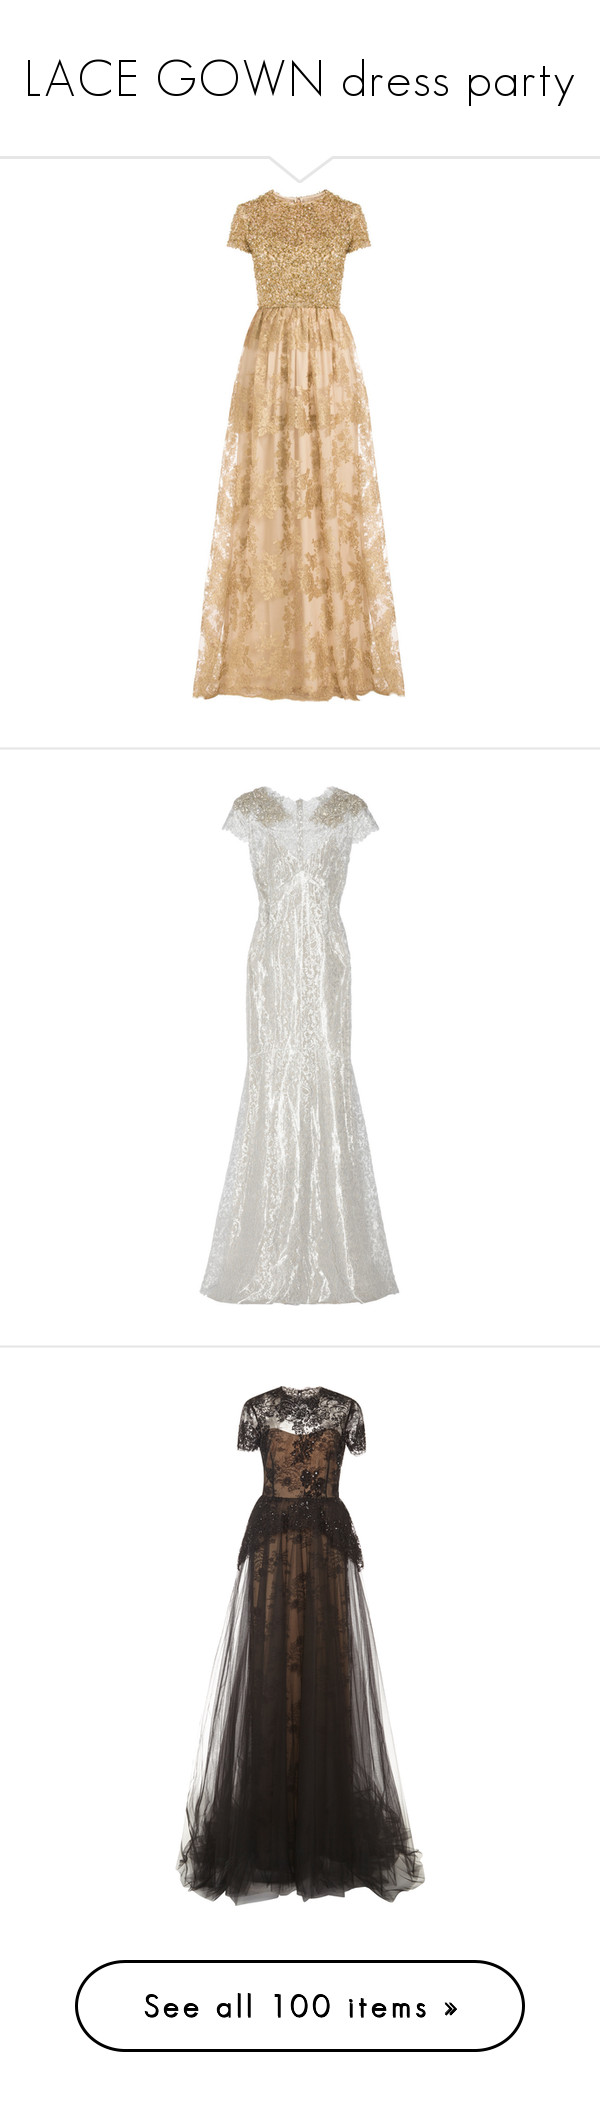 Lace gown dress party